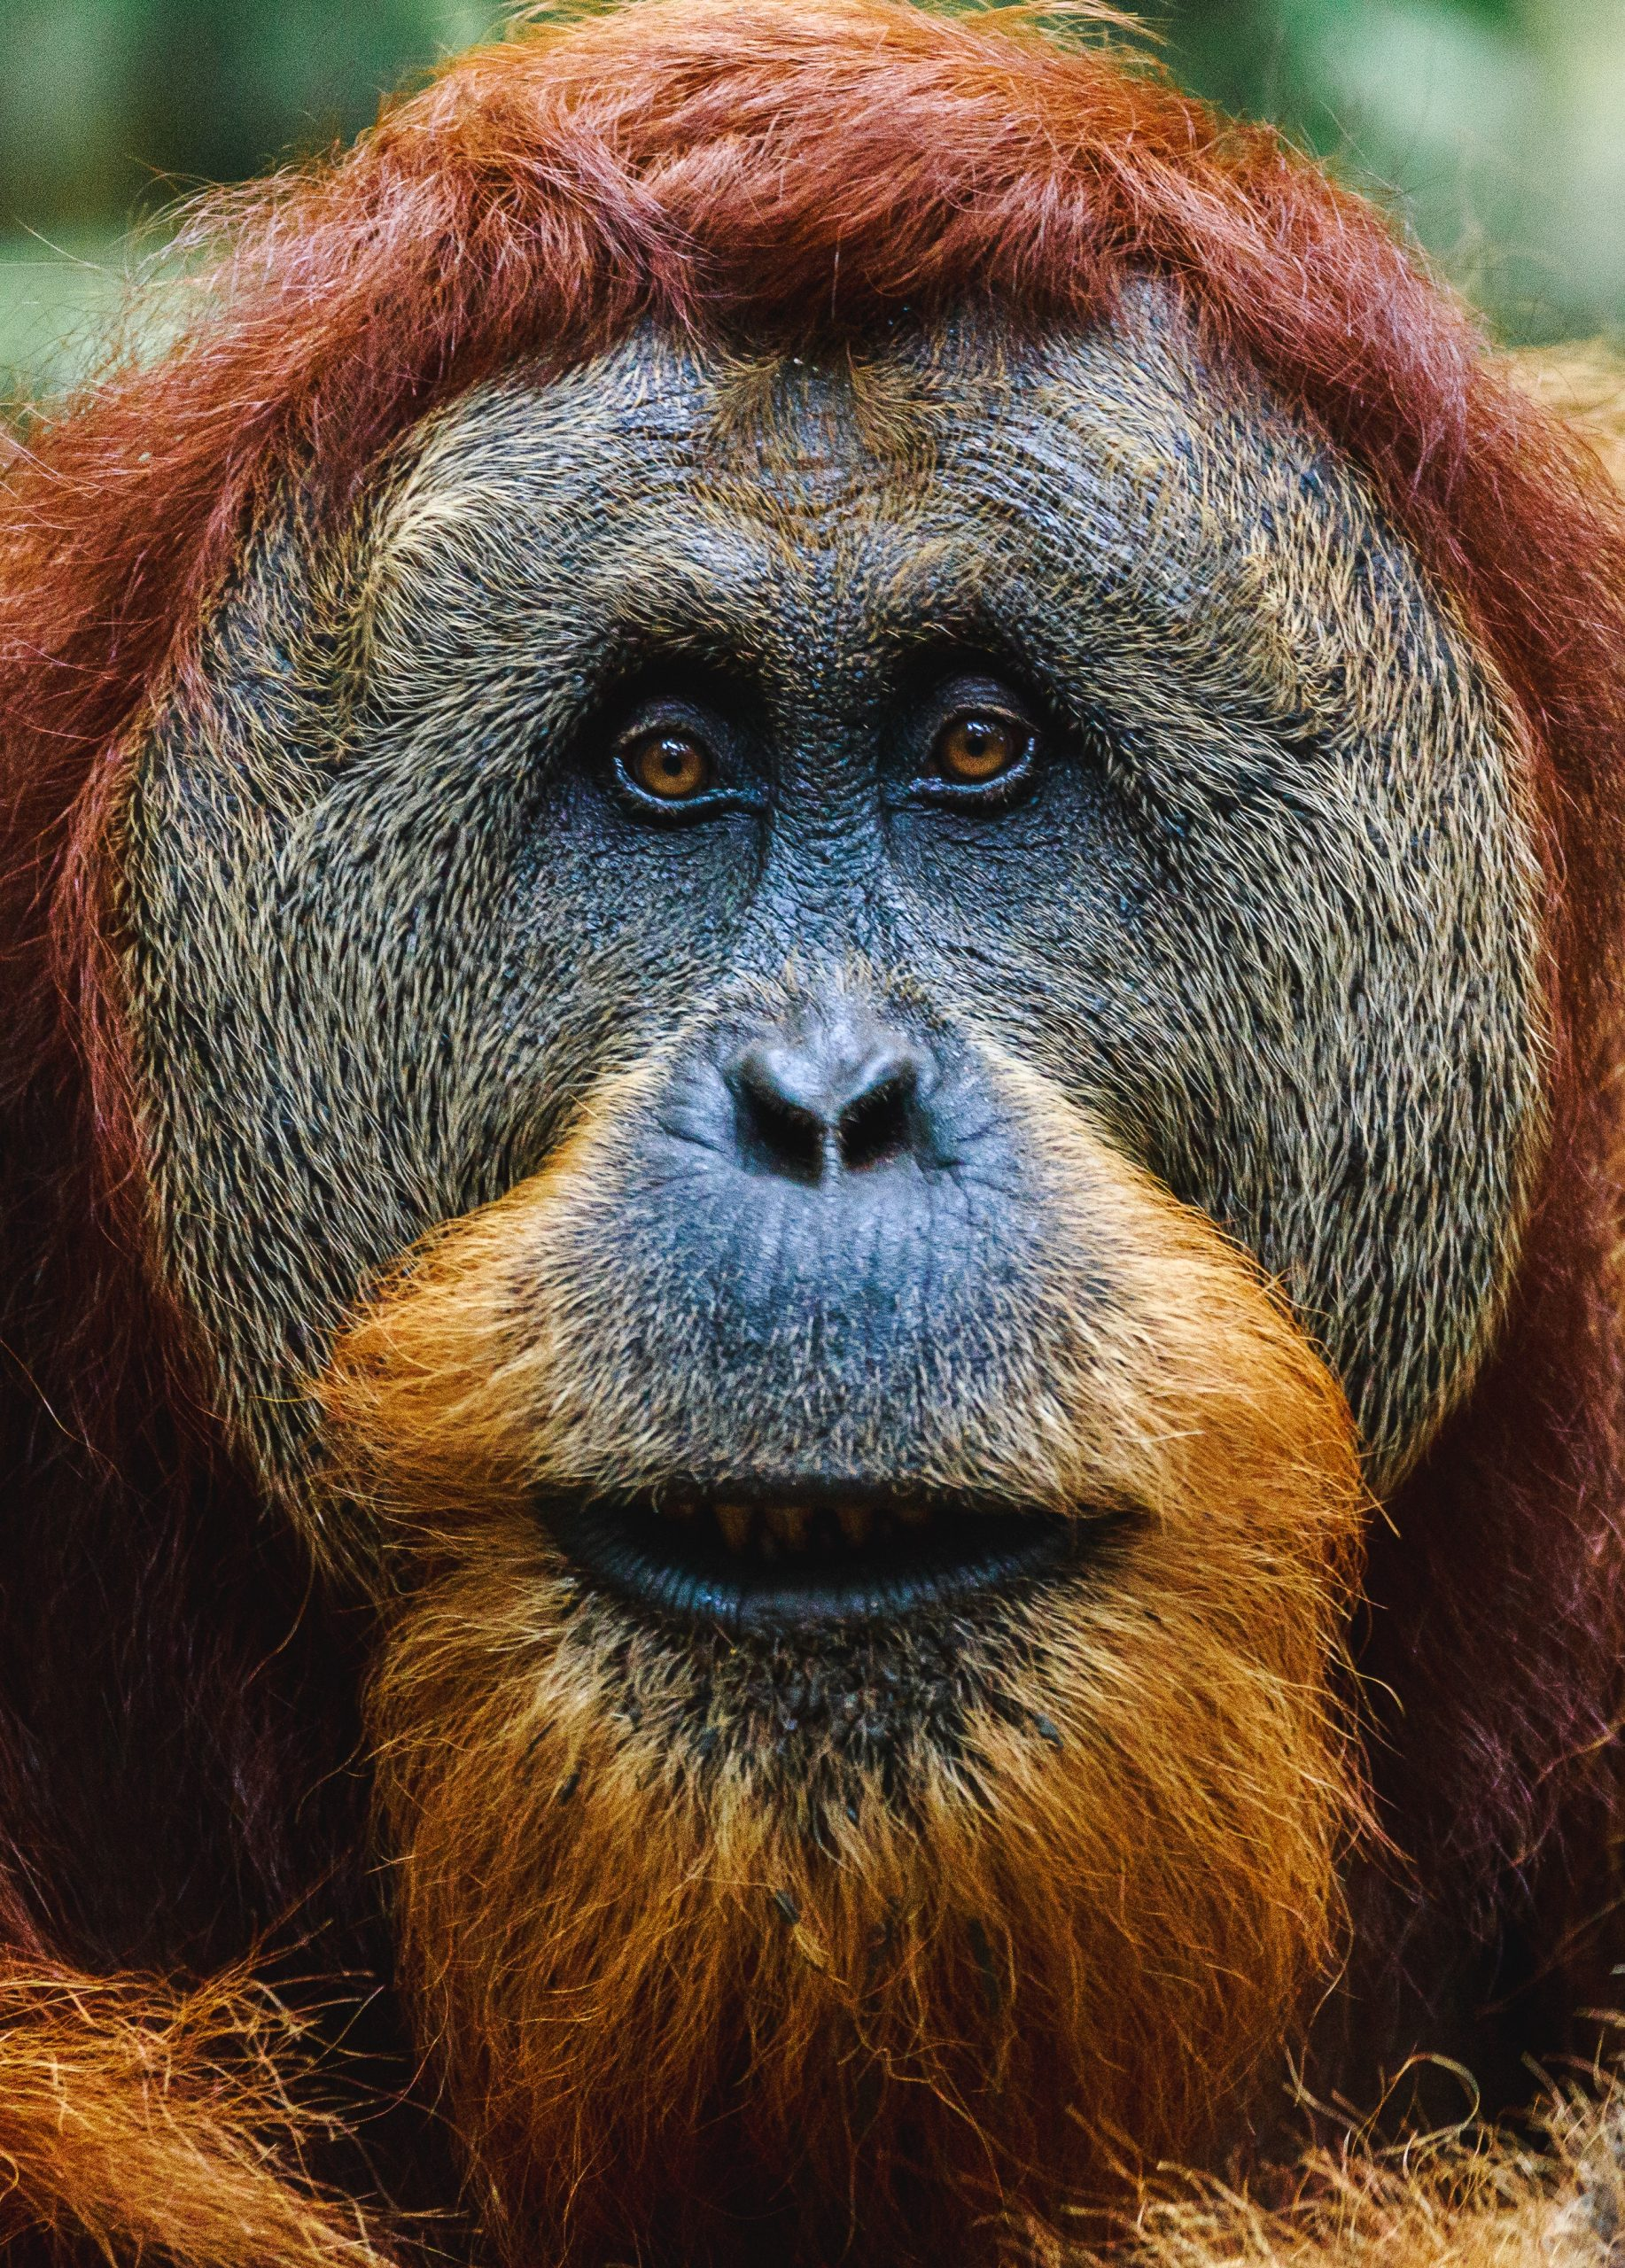 Palm Oil Deforestation: A Threat to Orangutan Populations, Indigenous People and Biodiversity